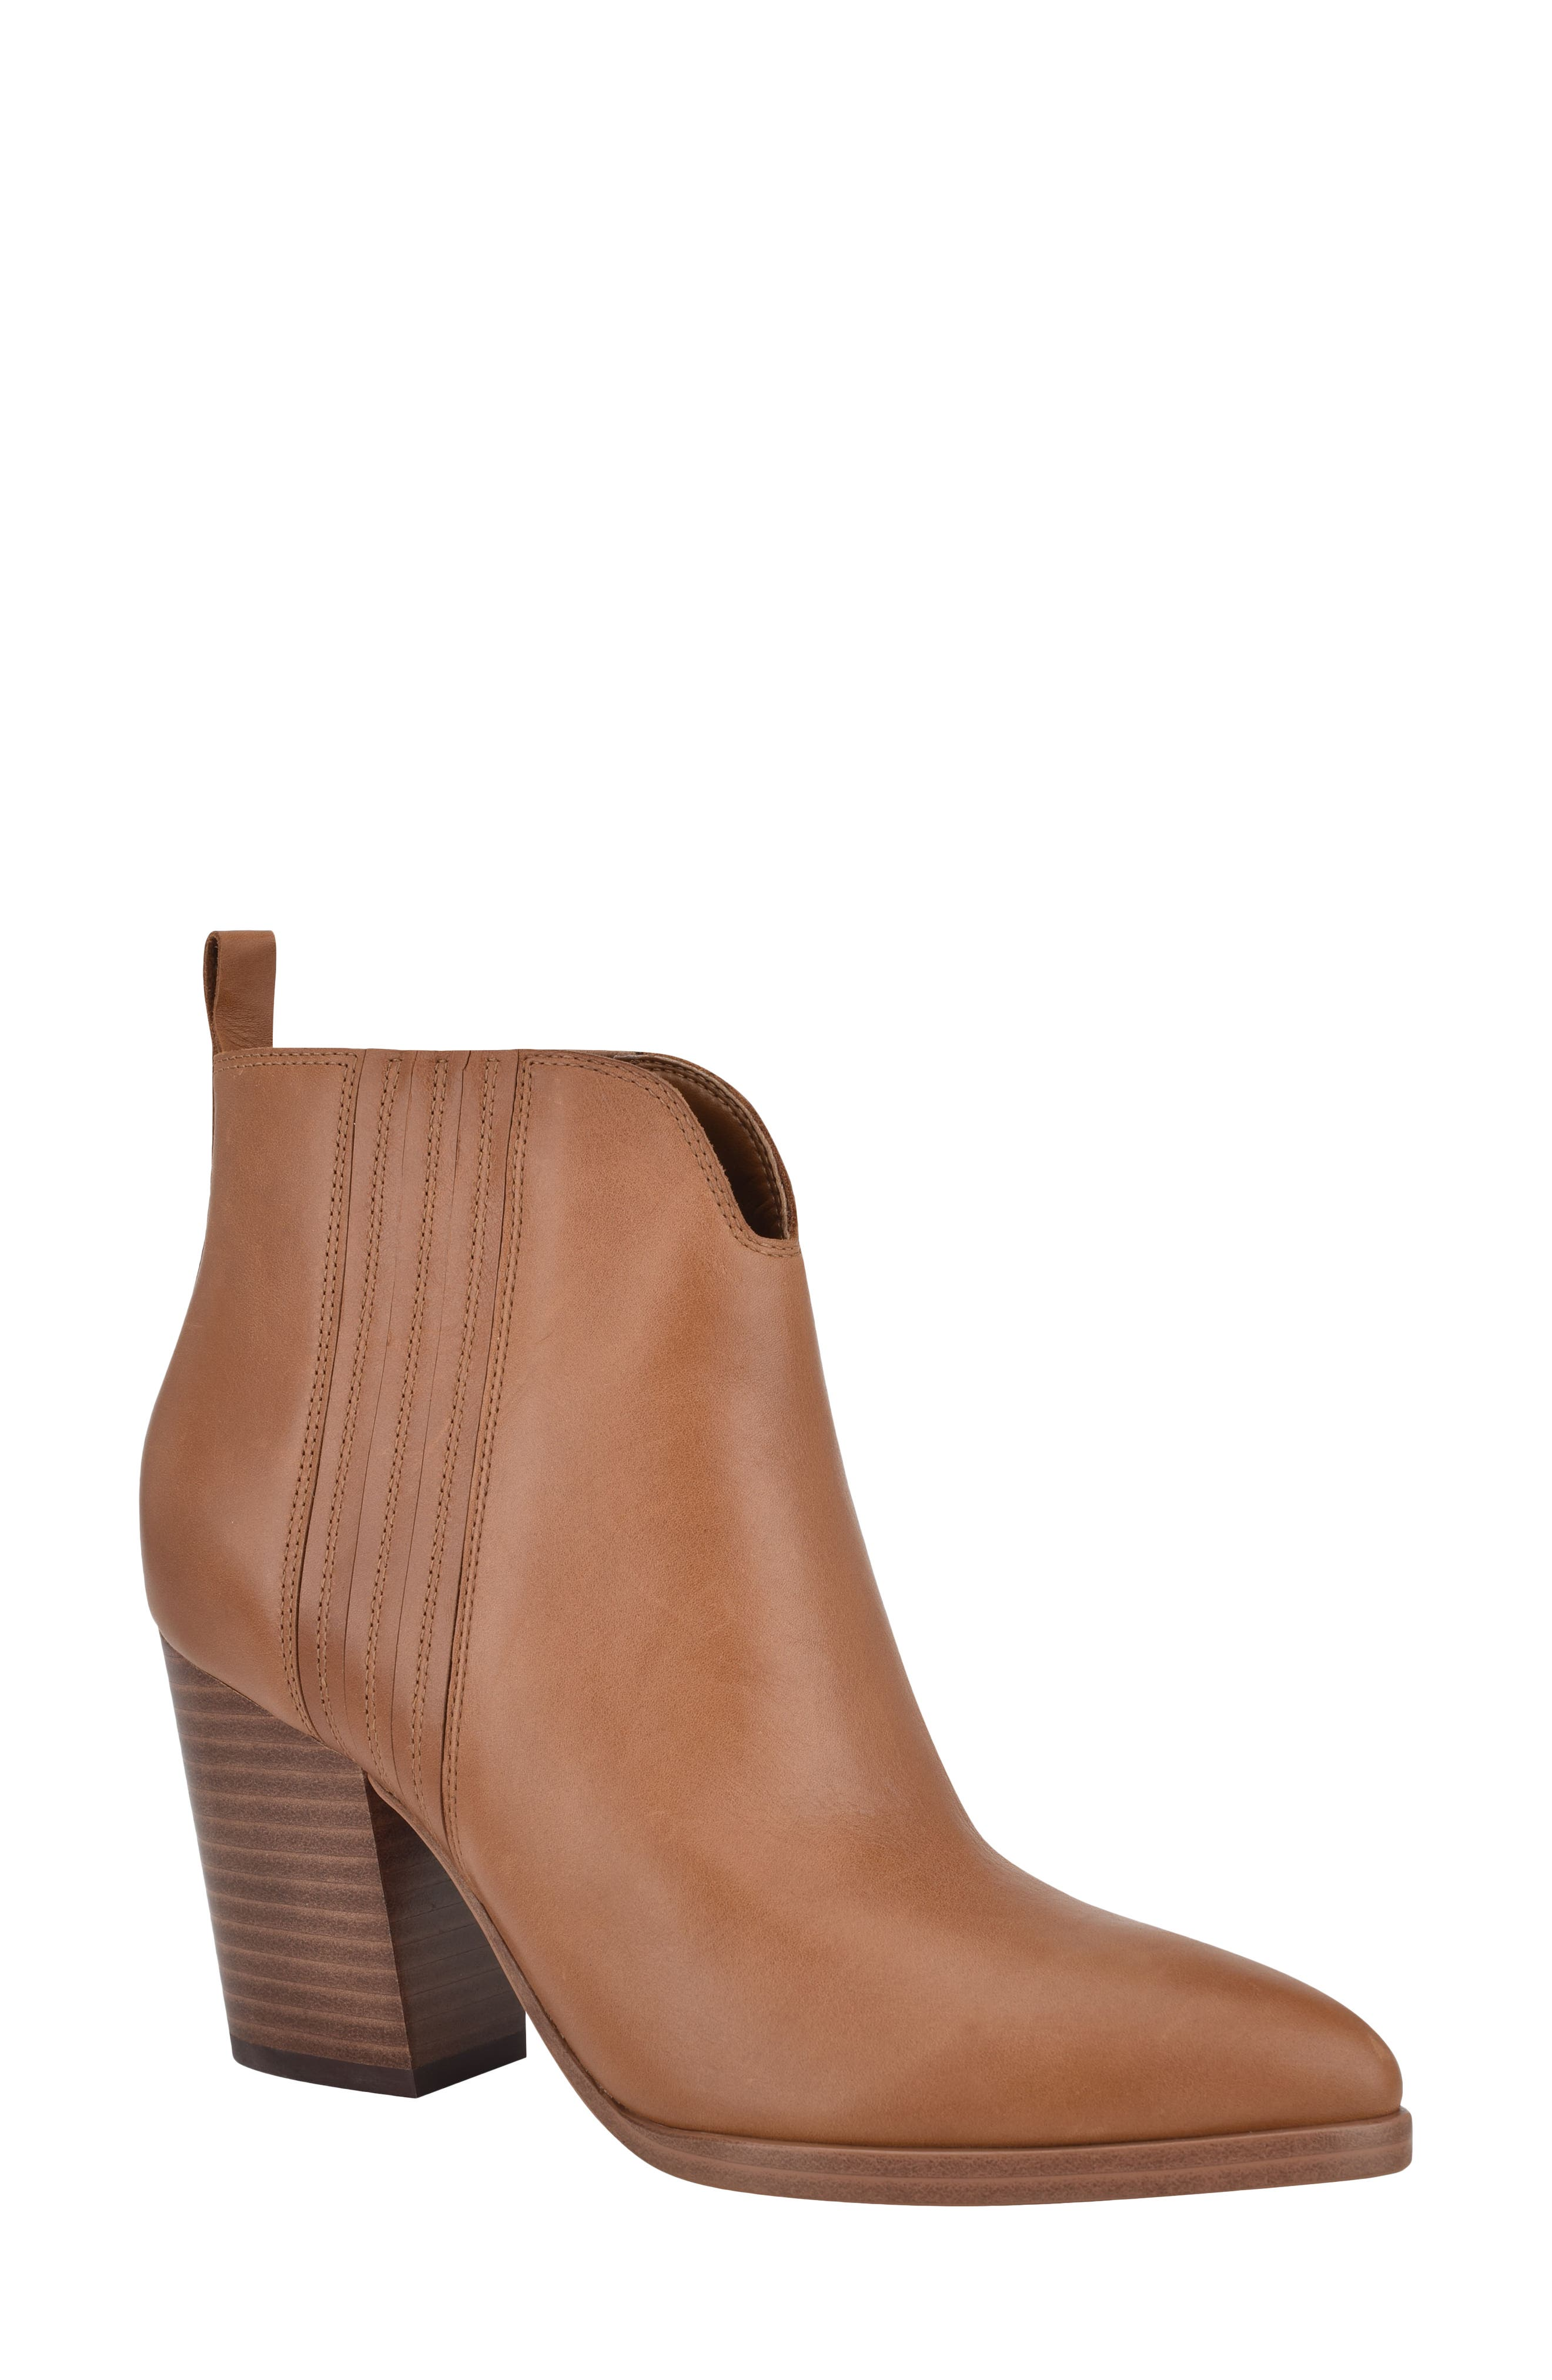 A gently pointed toe and tall stacked heel balance a versatile bootie with hidden elastic-gore insets at the sides. Style Name: Marc Fisher Ltd Annabel Bootie (Women). Style Number: 6061735. Available in stores.